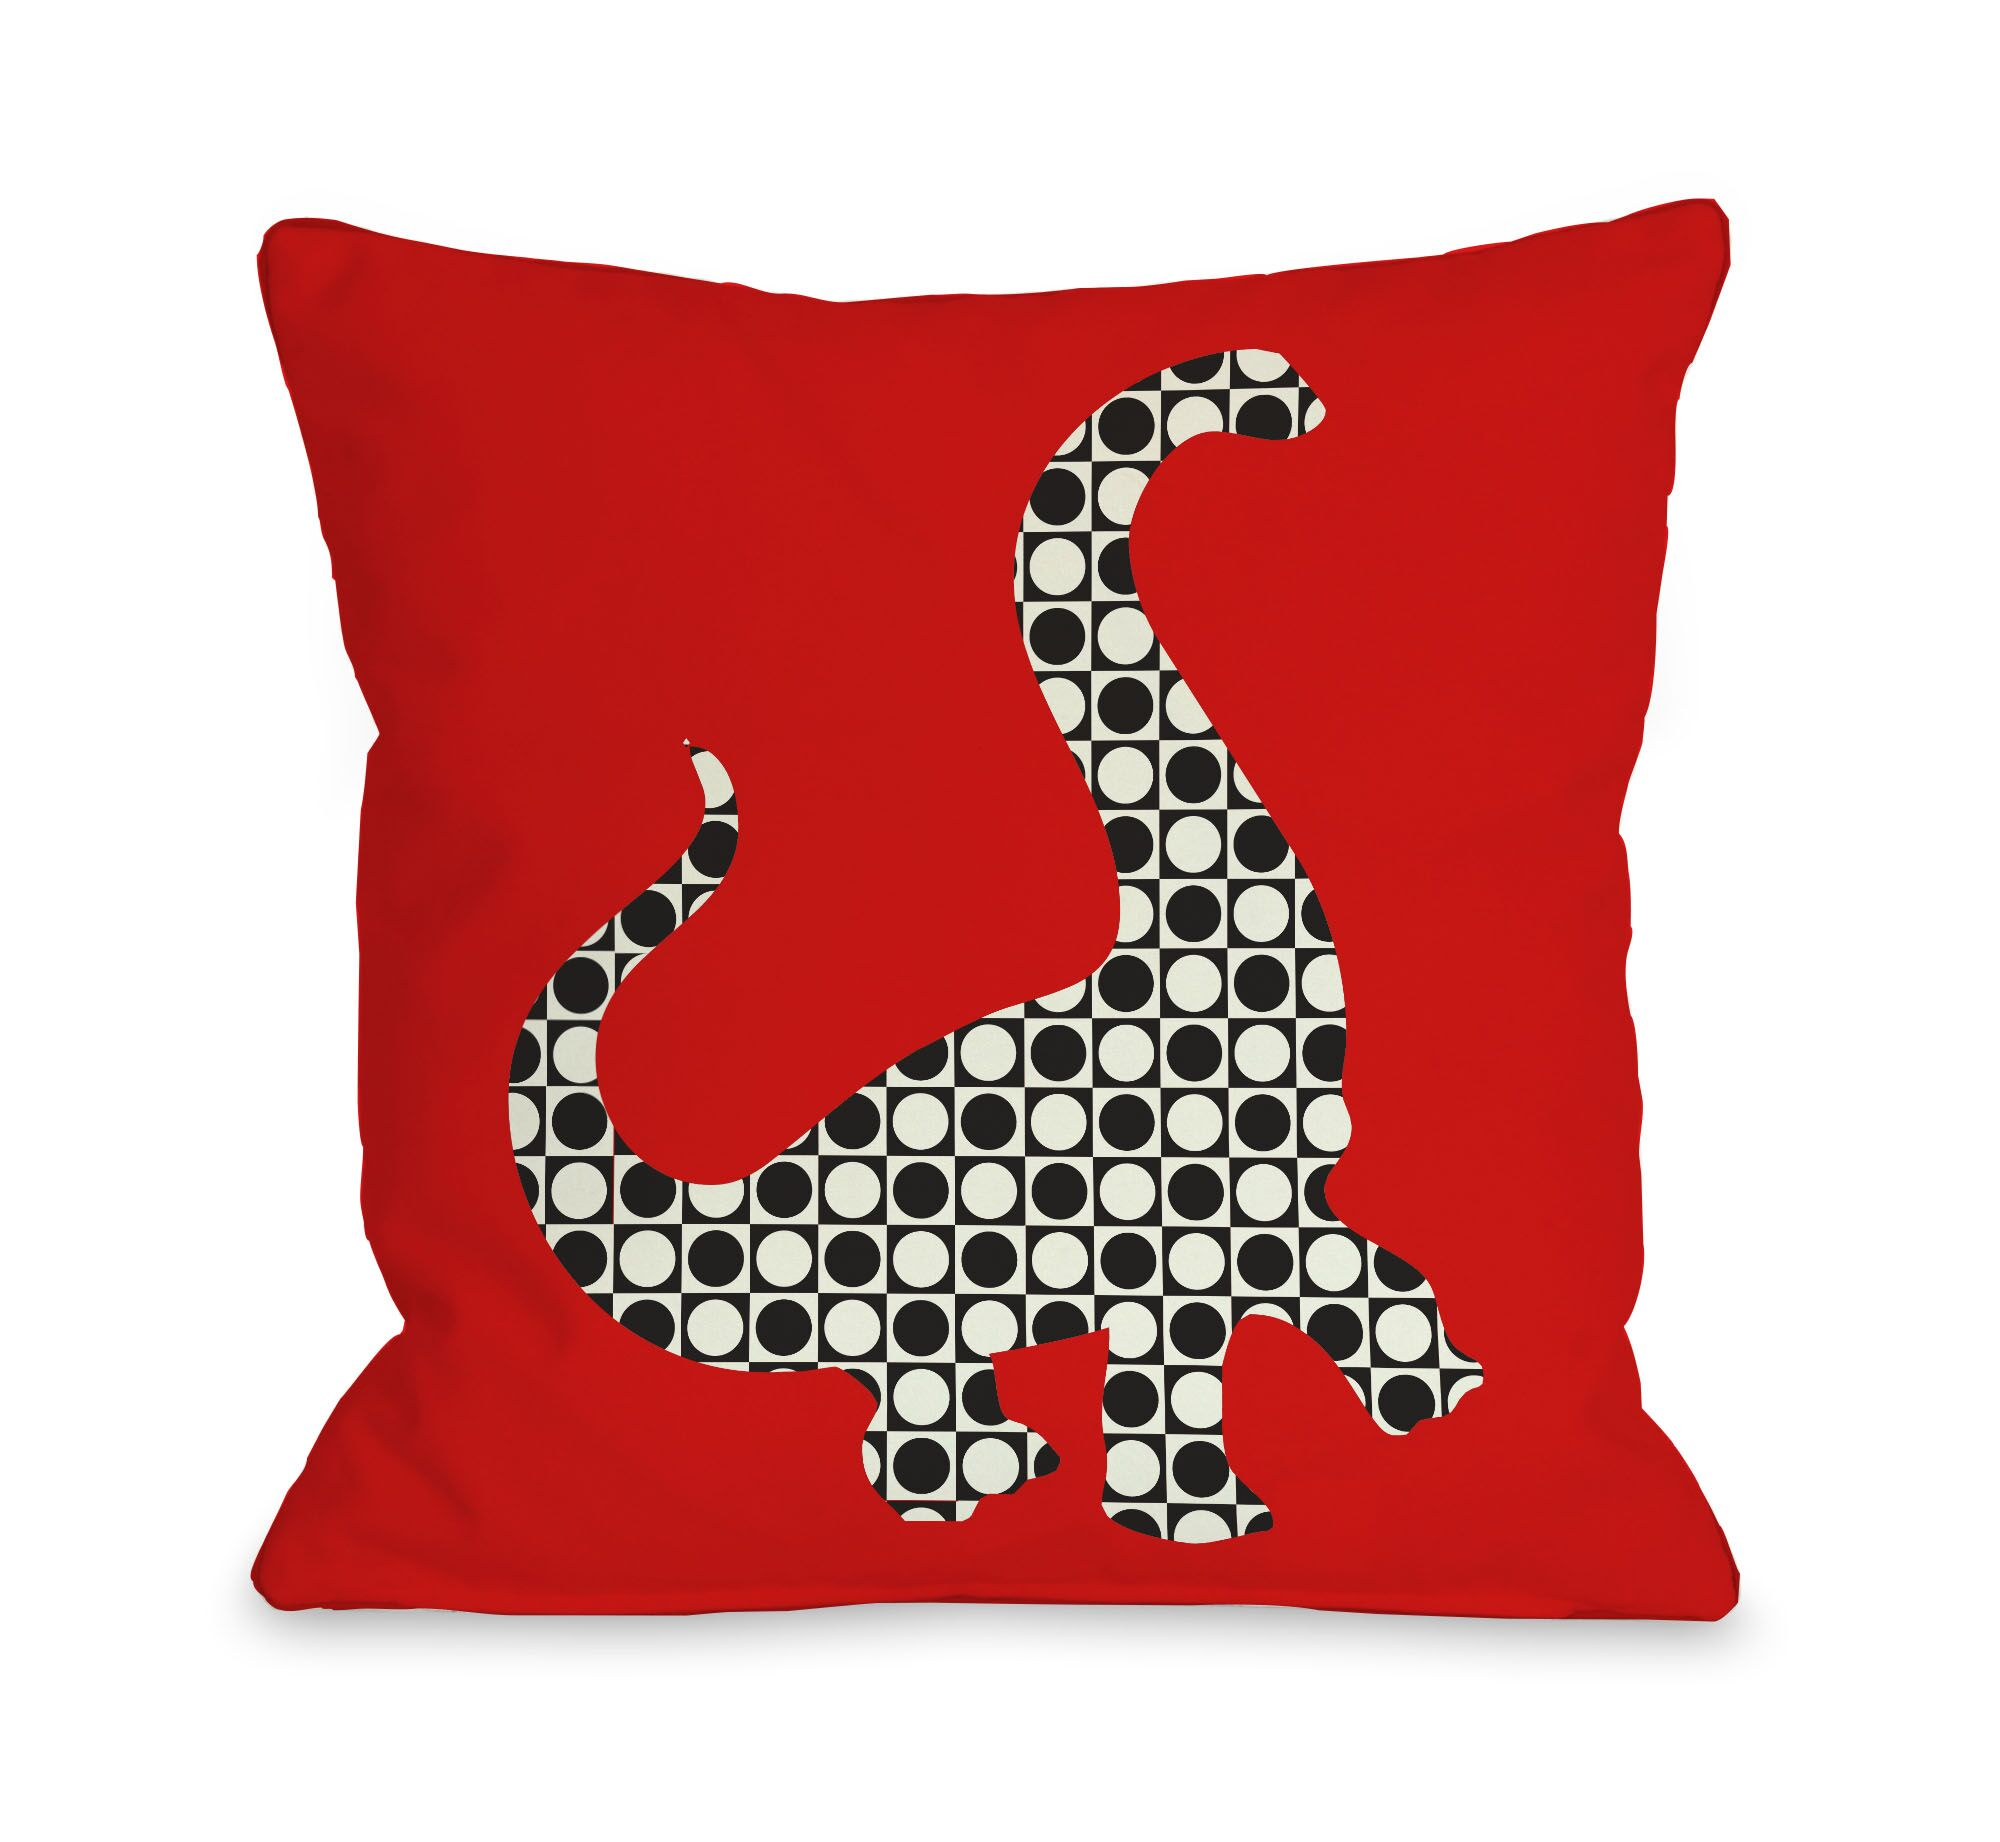 Camasaurus Throw Pillow Size: 20